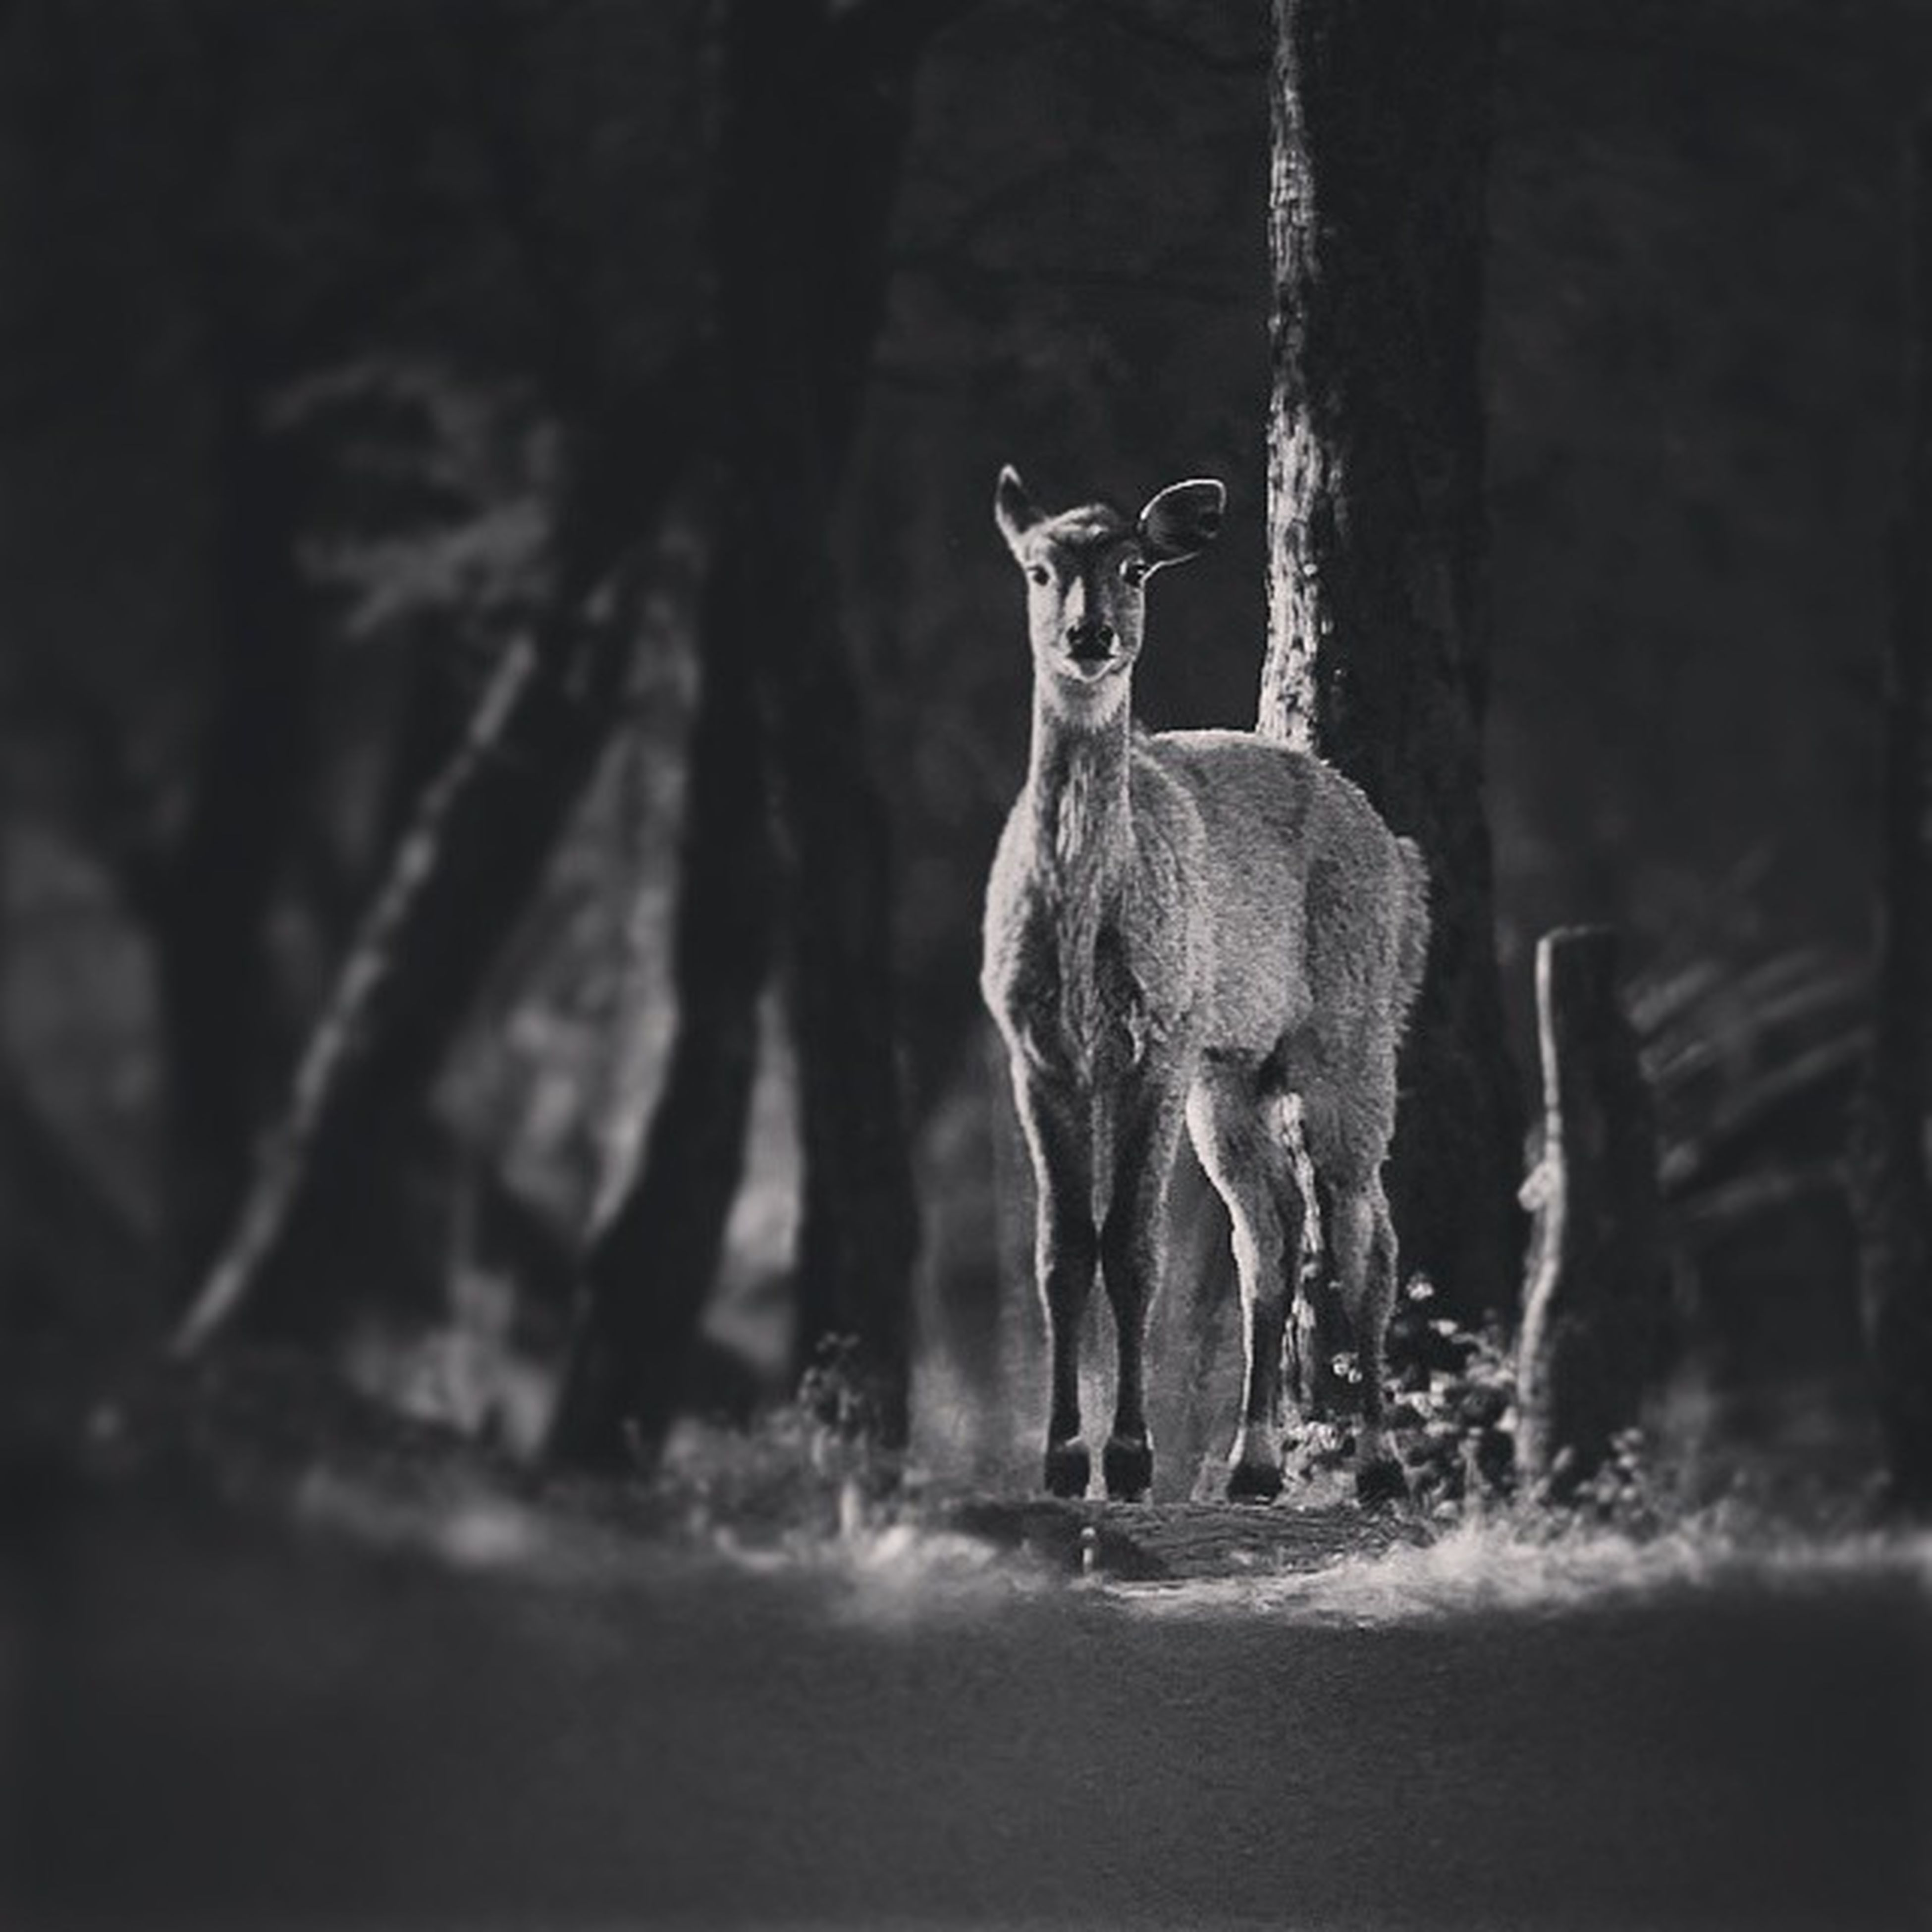 animal themes, mammal, one animal, domestic animals, herbivorous, livestock, full length, animals in the wild, standing, horse, wildlife, two animals, zoology, side view, horned, nature, forest, no people, tree, deer